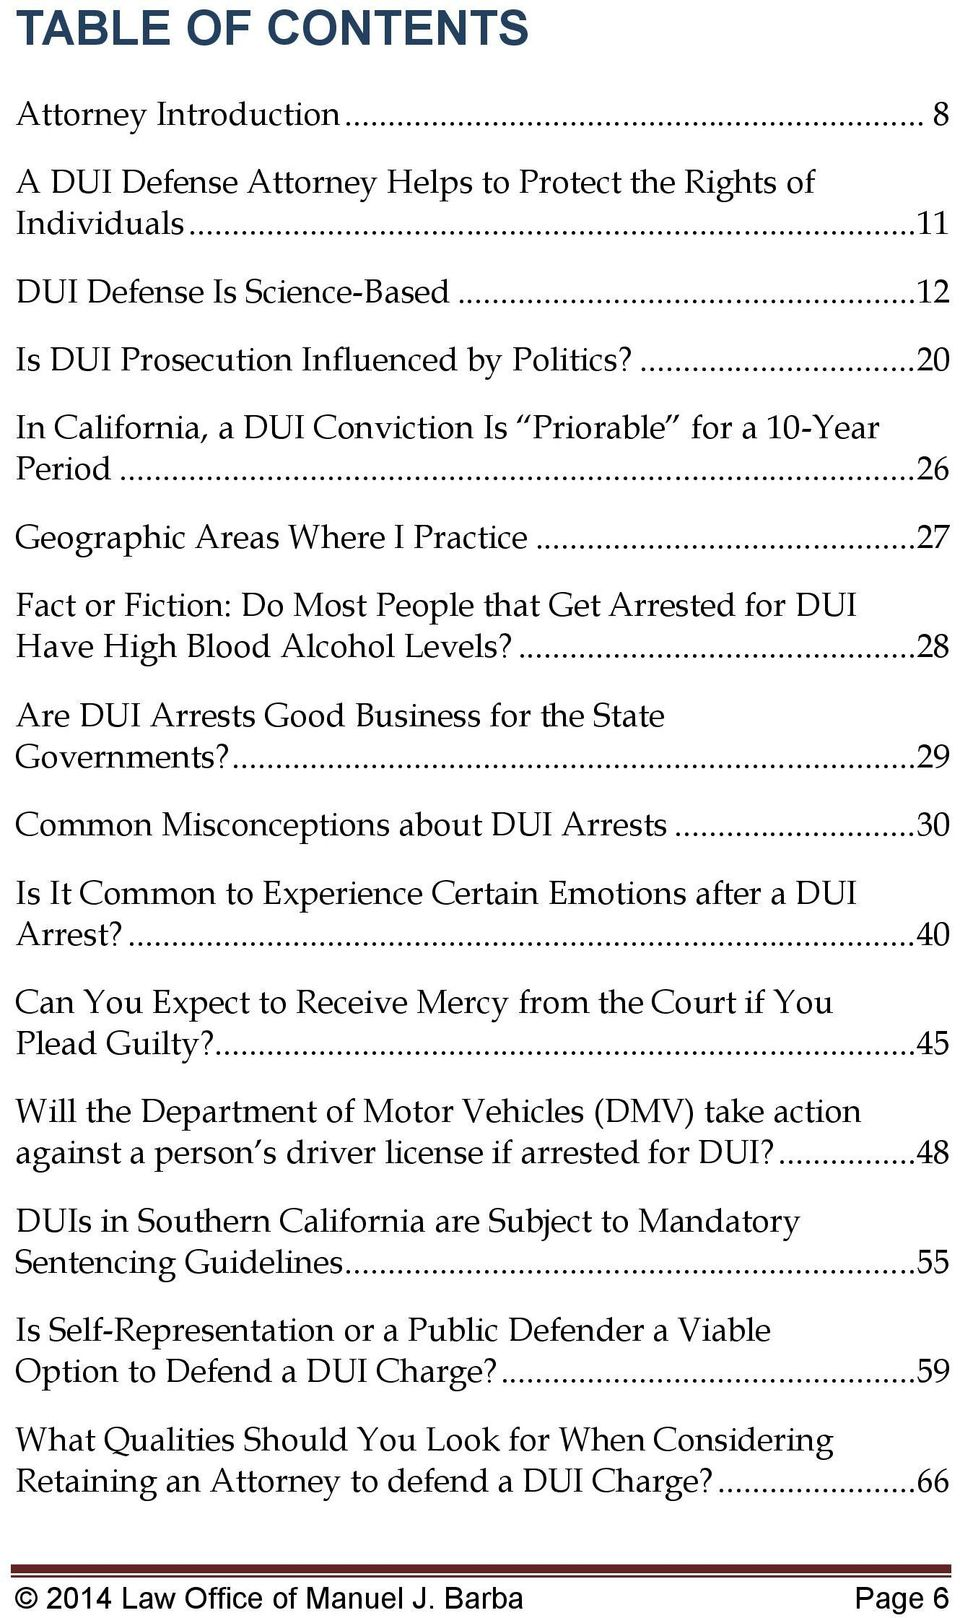 ..27 Fact or Fiction: Do Most People that Get Arrested for DUI Have High Blood Alcohol Levels?...28 Are DUI Arrests Good Business for the State Governments?...29 Common Misconceptions about DUI Arrests.